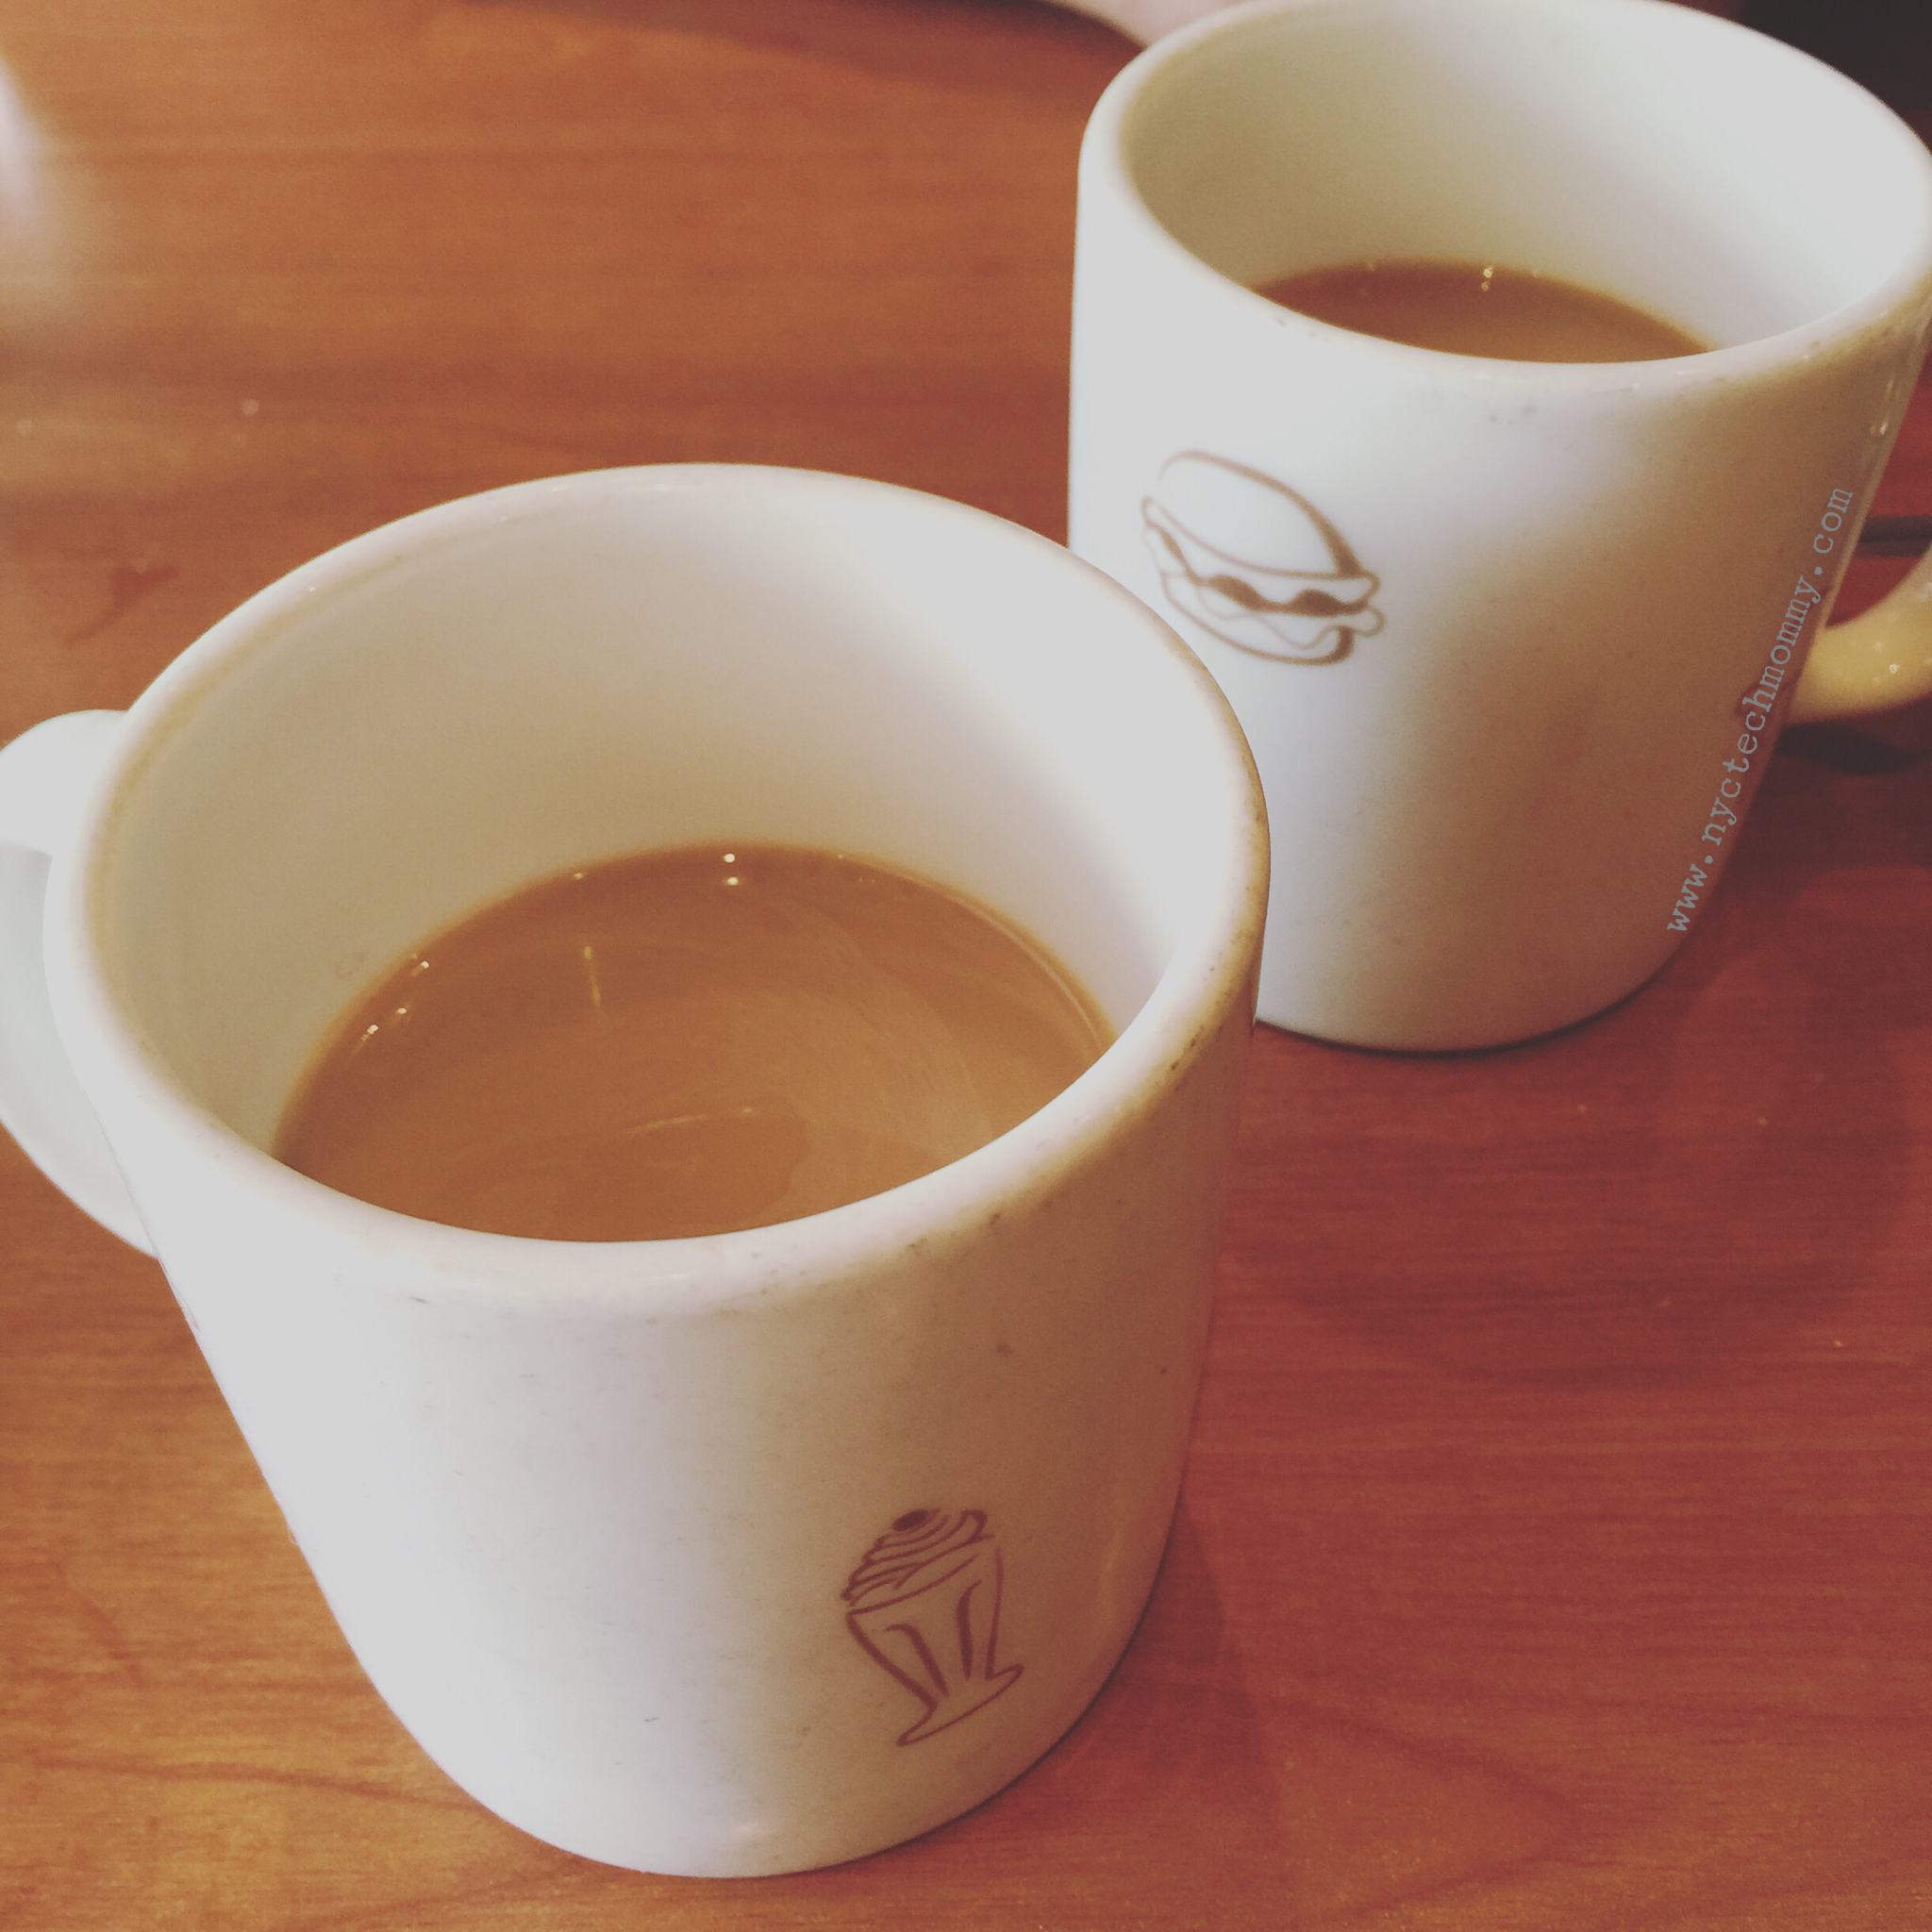 We stopped at Friendly's for a cozy little coffee break. I always need coffee!